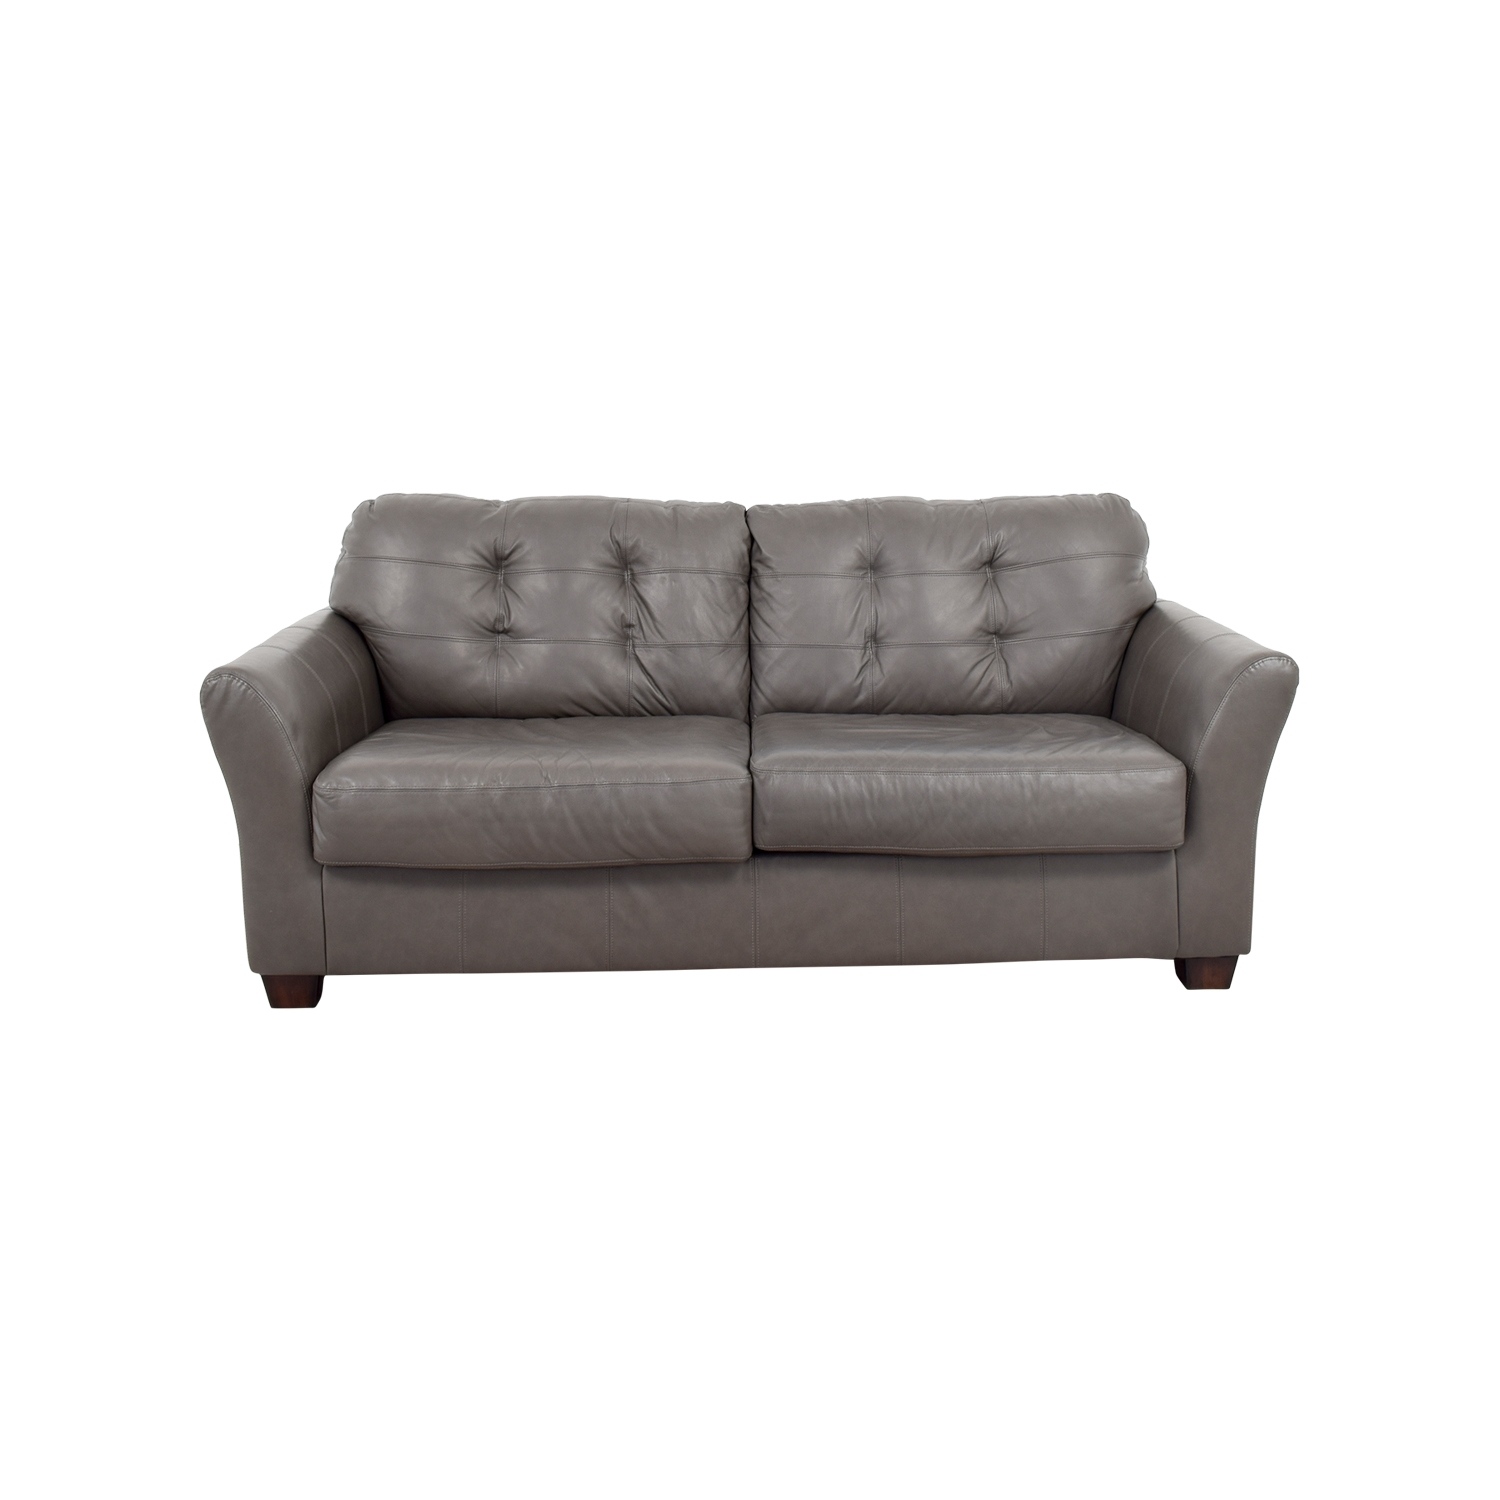 66% Off – Ashley Furniture Ashley Furniture Gray Tufted Sofa / Sofas With Regard To Ashley Tufted Sofas (Gallery 9 of 10)